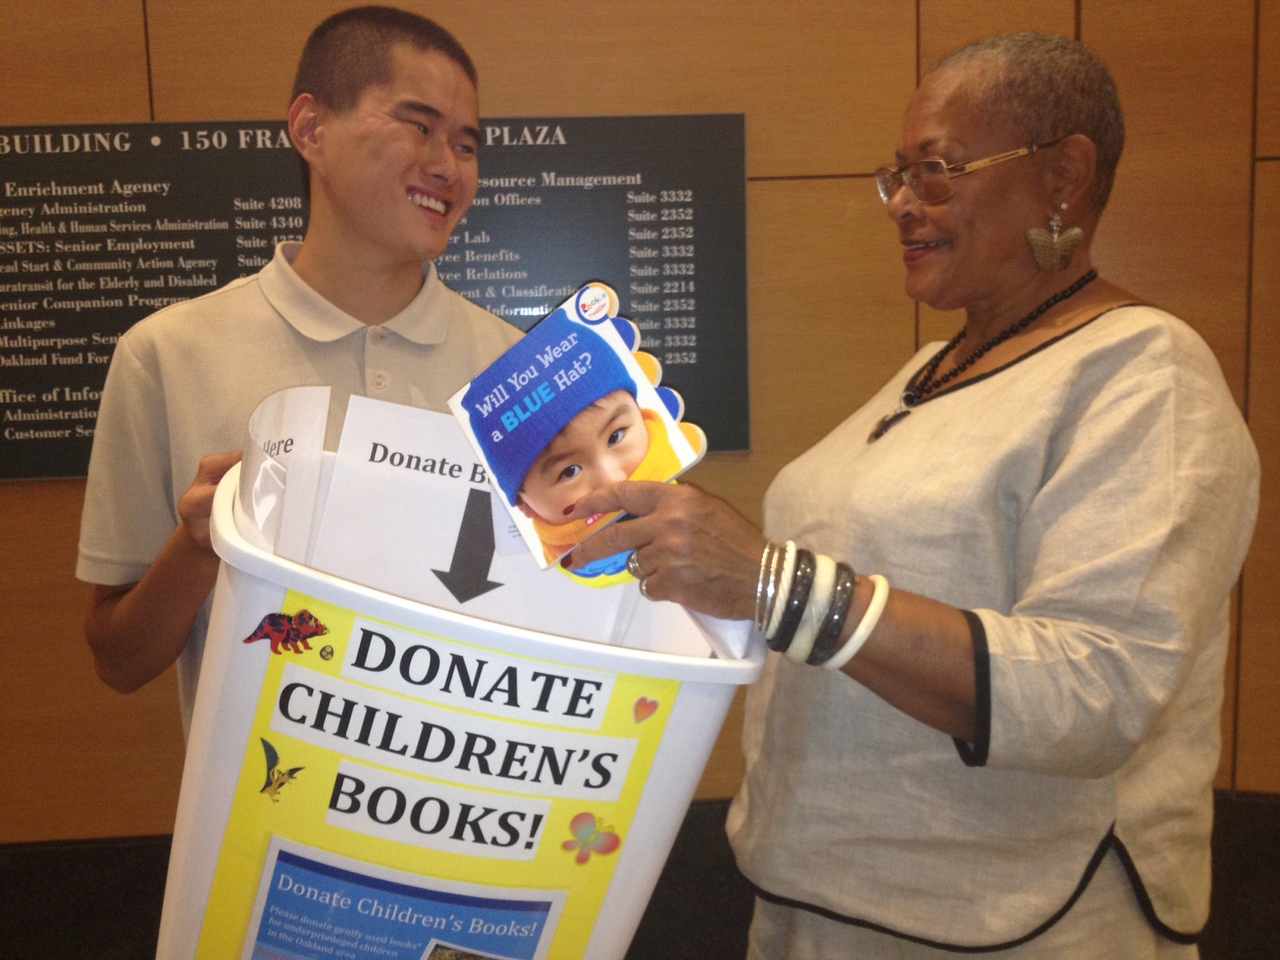 Michael Wang collects a children's book from Ethel Parks, a Foster Grandparent, on the first day of the Summer Book Drive in Oakland, CA.